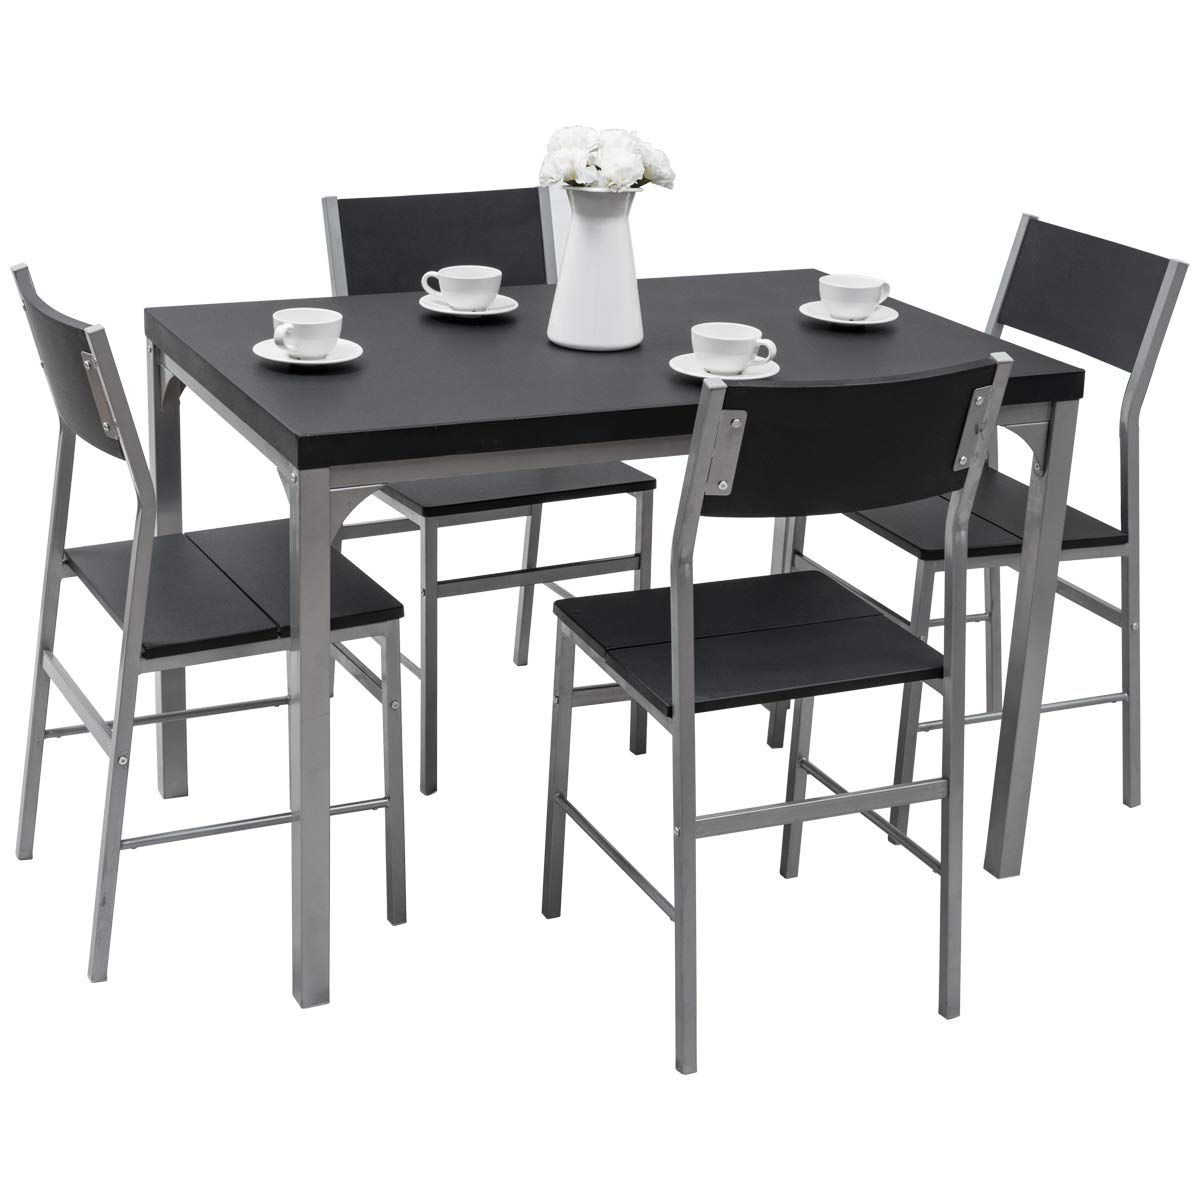 Tangkula Dining Table Set 5 PCS Modern Kitchen Dining Room Wood Top Table and Chairs Home Breakfast Furniture, Black and Grey